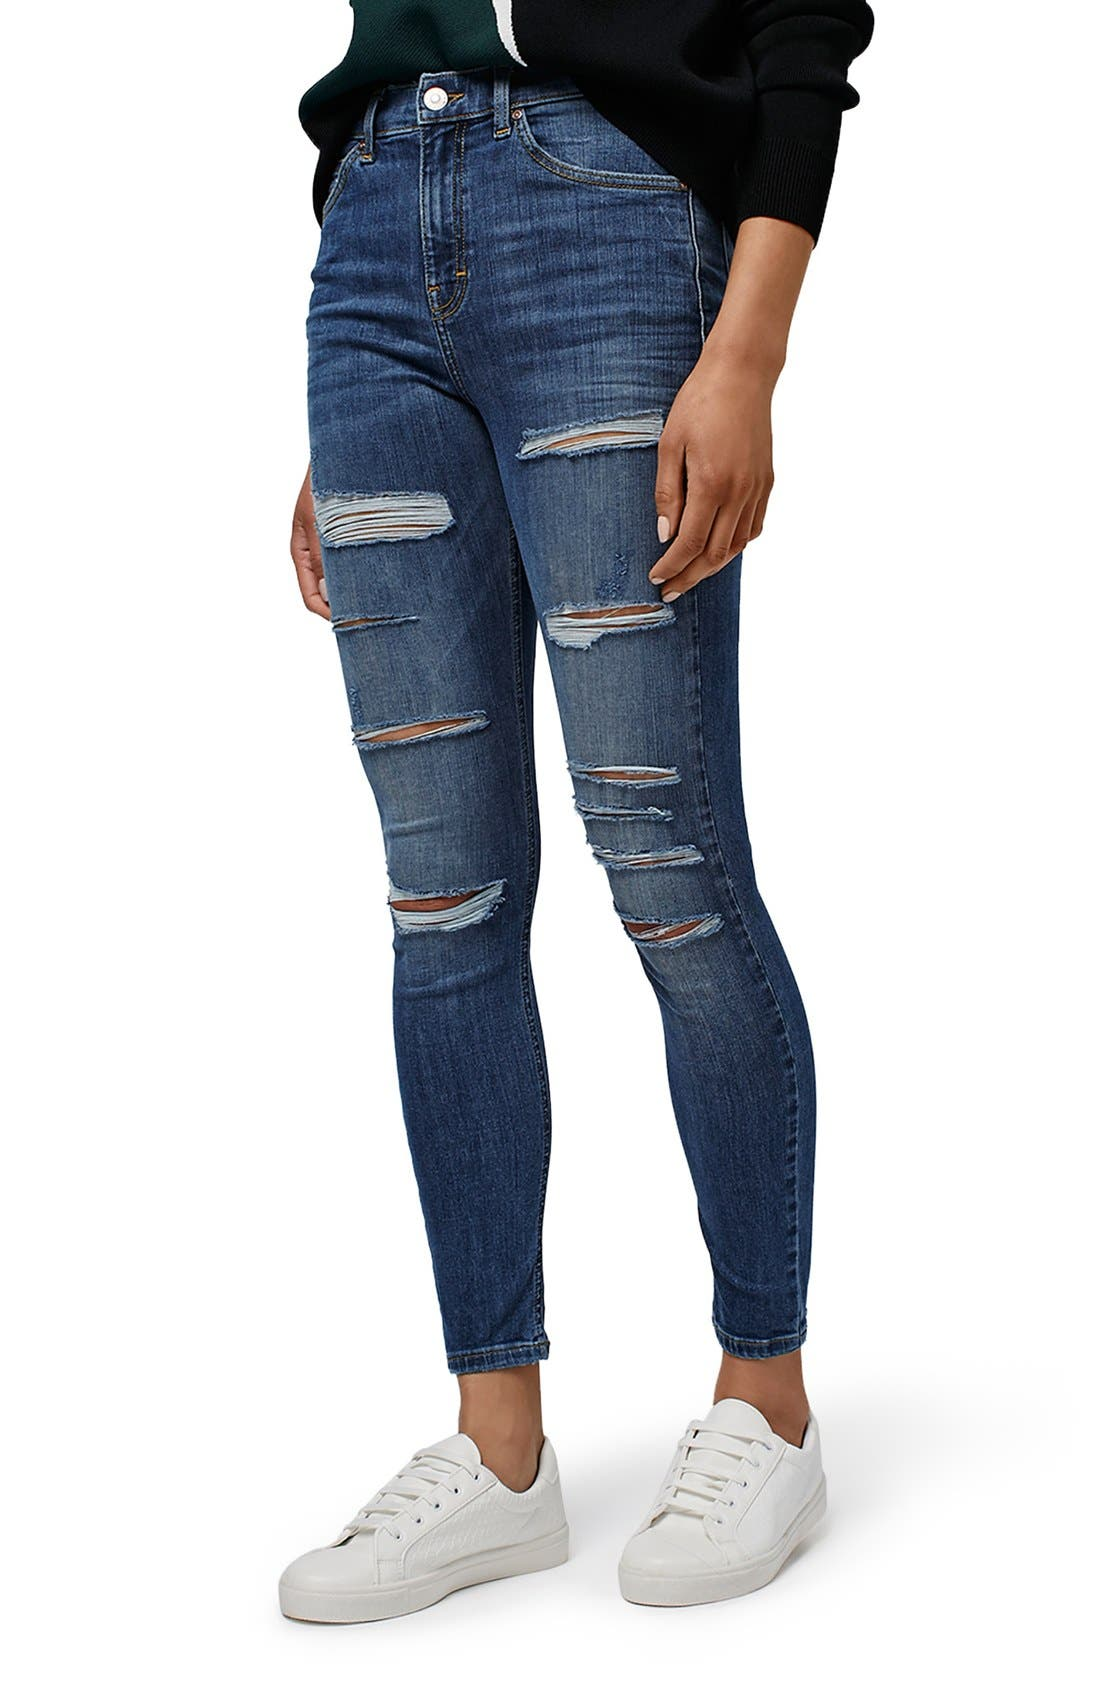 TOPSHOP, Jamie Ripped High Rise Skinny Jeans, Alternate thumbnail 2, color, 400